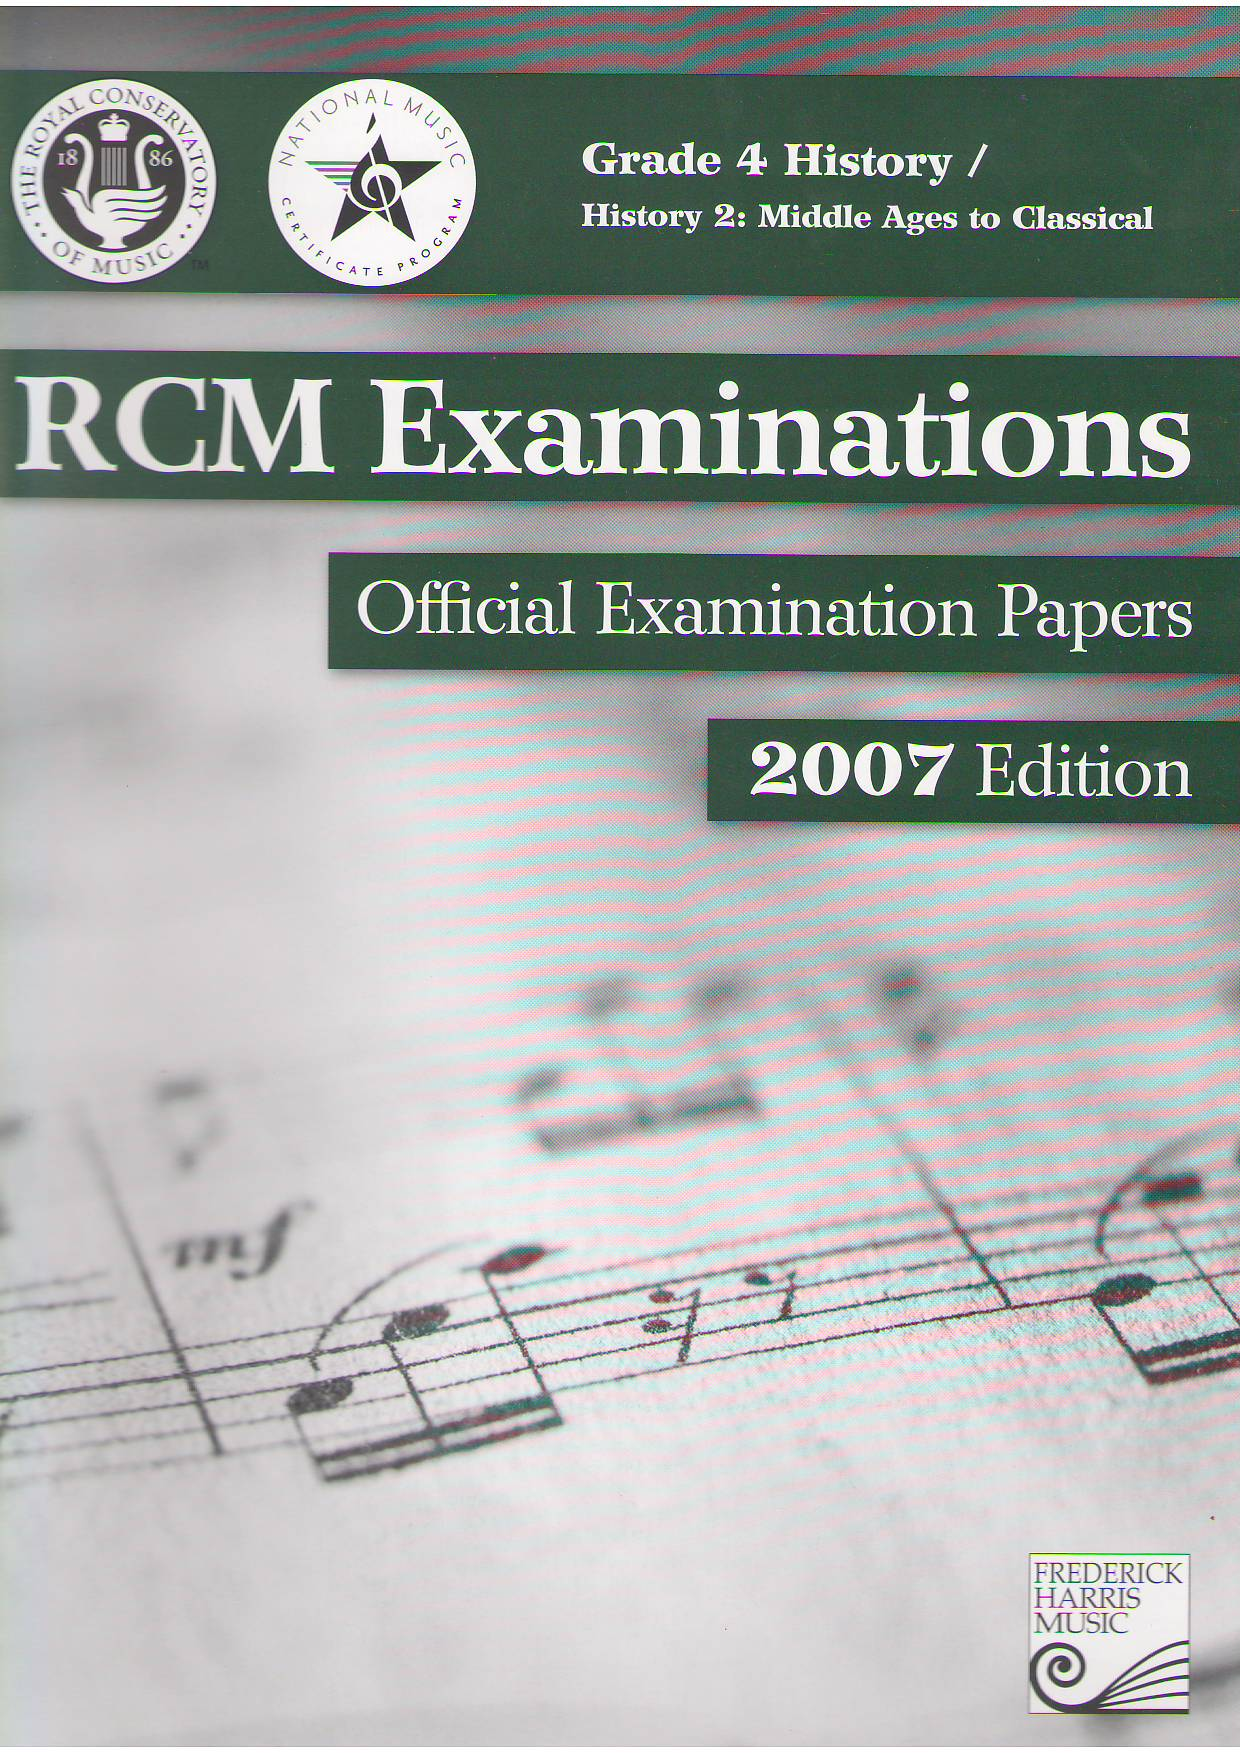 Rcm Official Examination Papers History 2 Middle Ages To Classical Grade 4 History